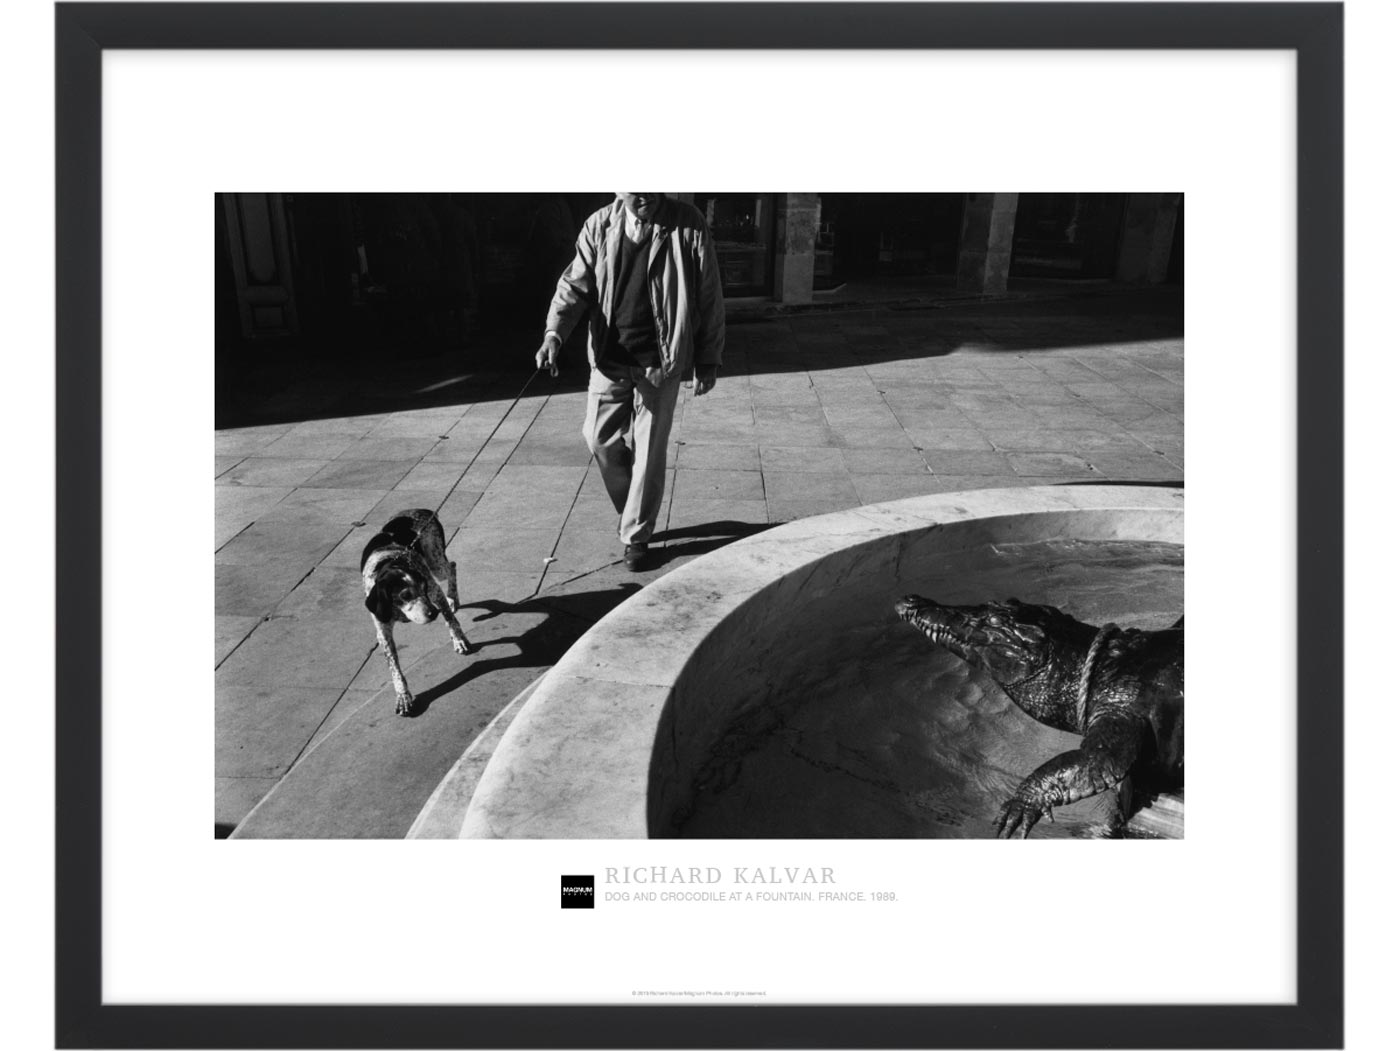 Magnum Collection Poster: Dog and crocodile at a fountain. France. 1989.